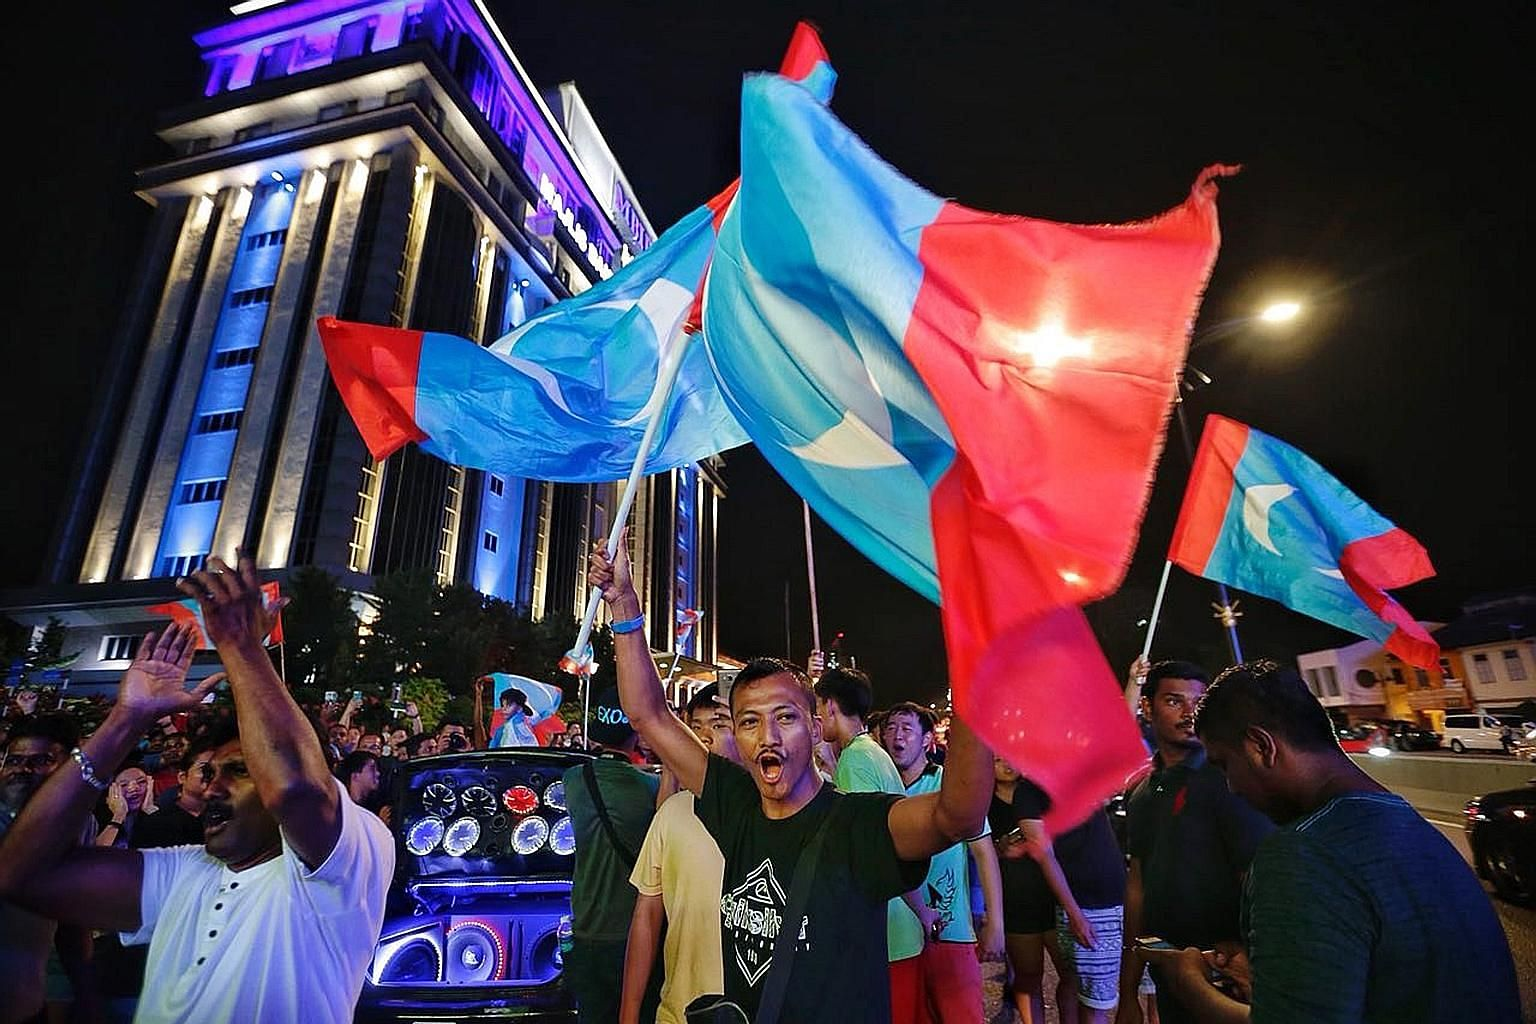 Supporters of Pakatan Harapan (PH) celebrating the coalition's win in Johor Baru last year. A recent Merdeka Centre survey showed that approval ratings for Prime Minister Mahathir Mohamad and PH have plunged since then, with only 24 per cent of Malay